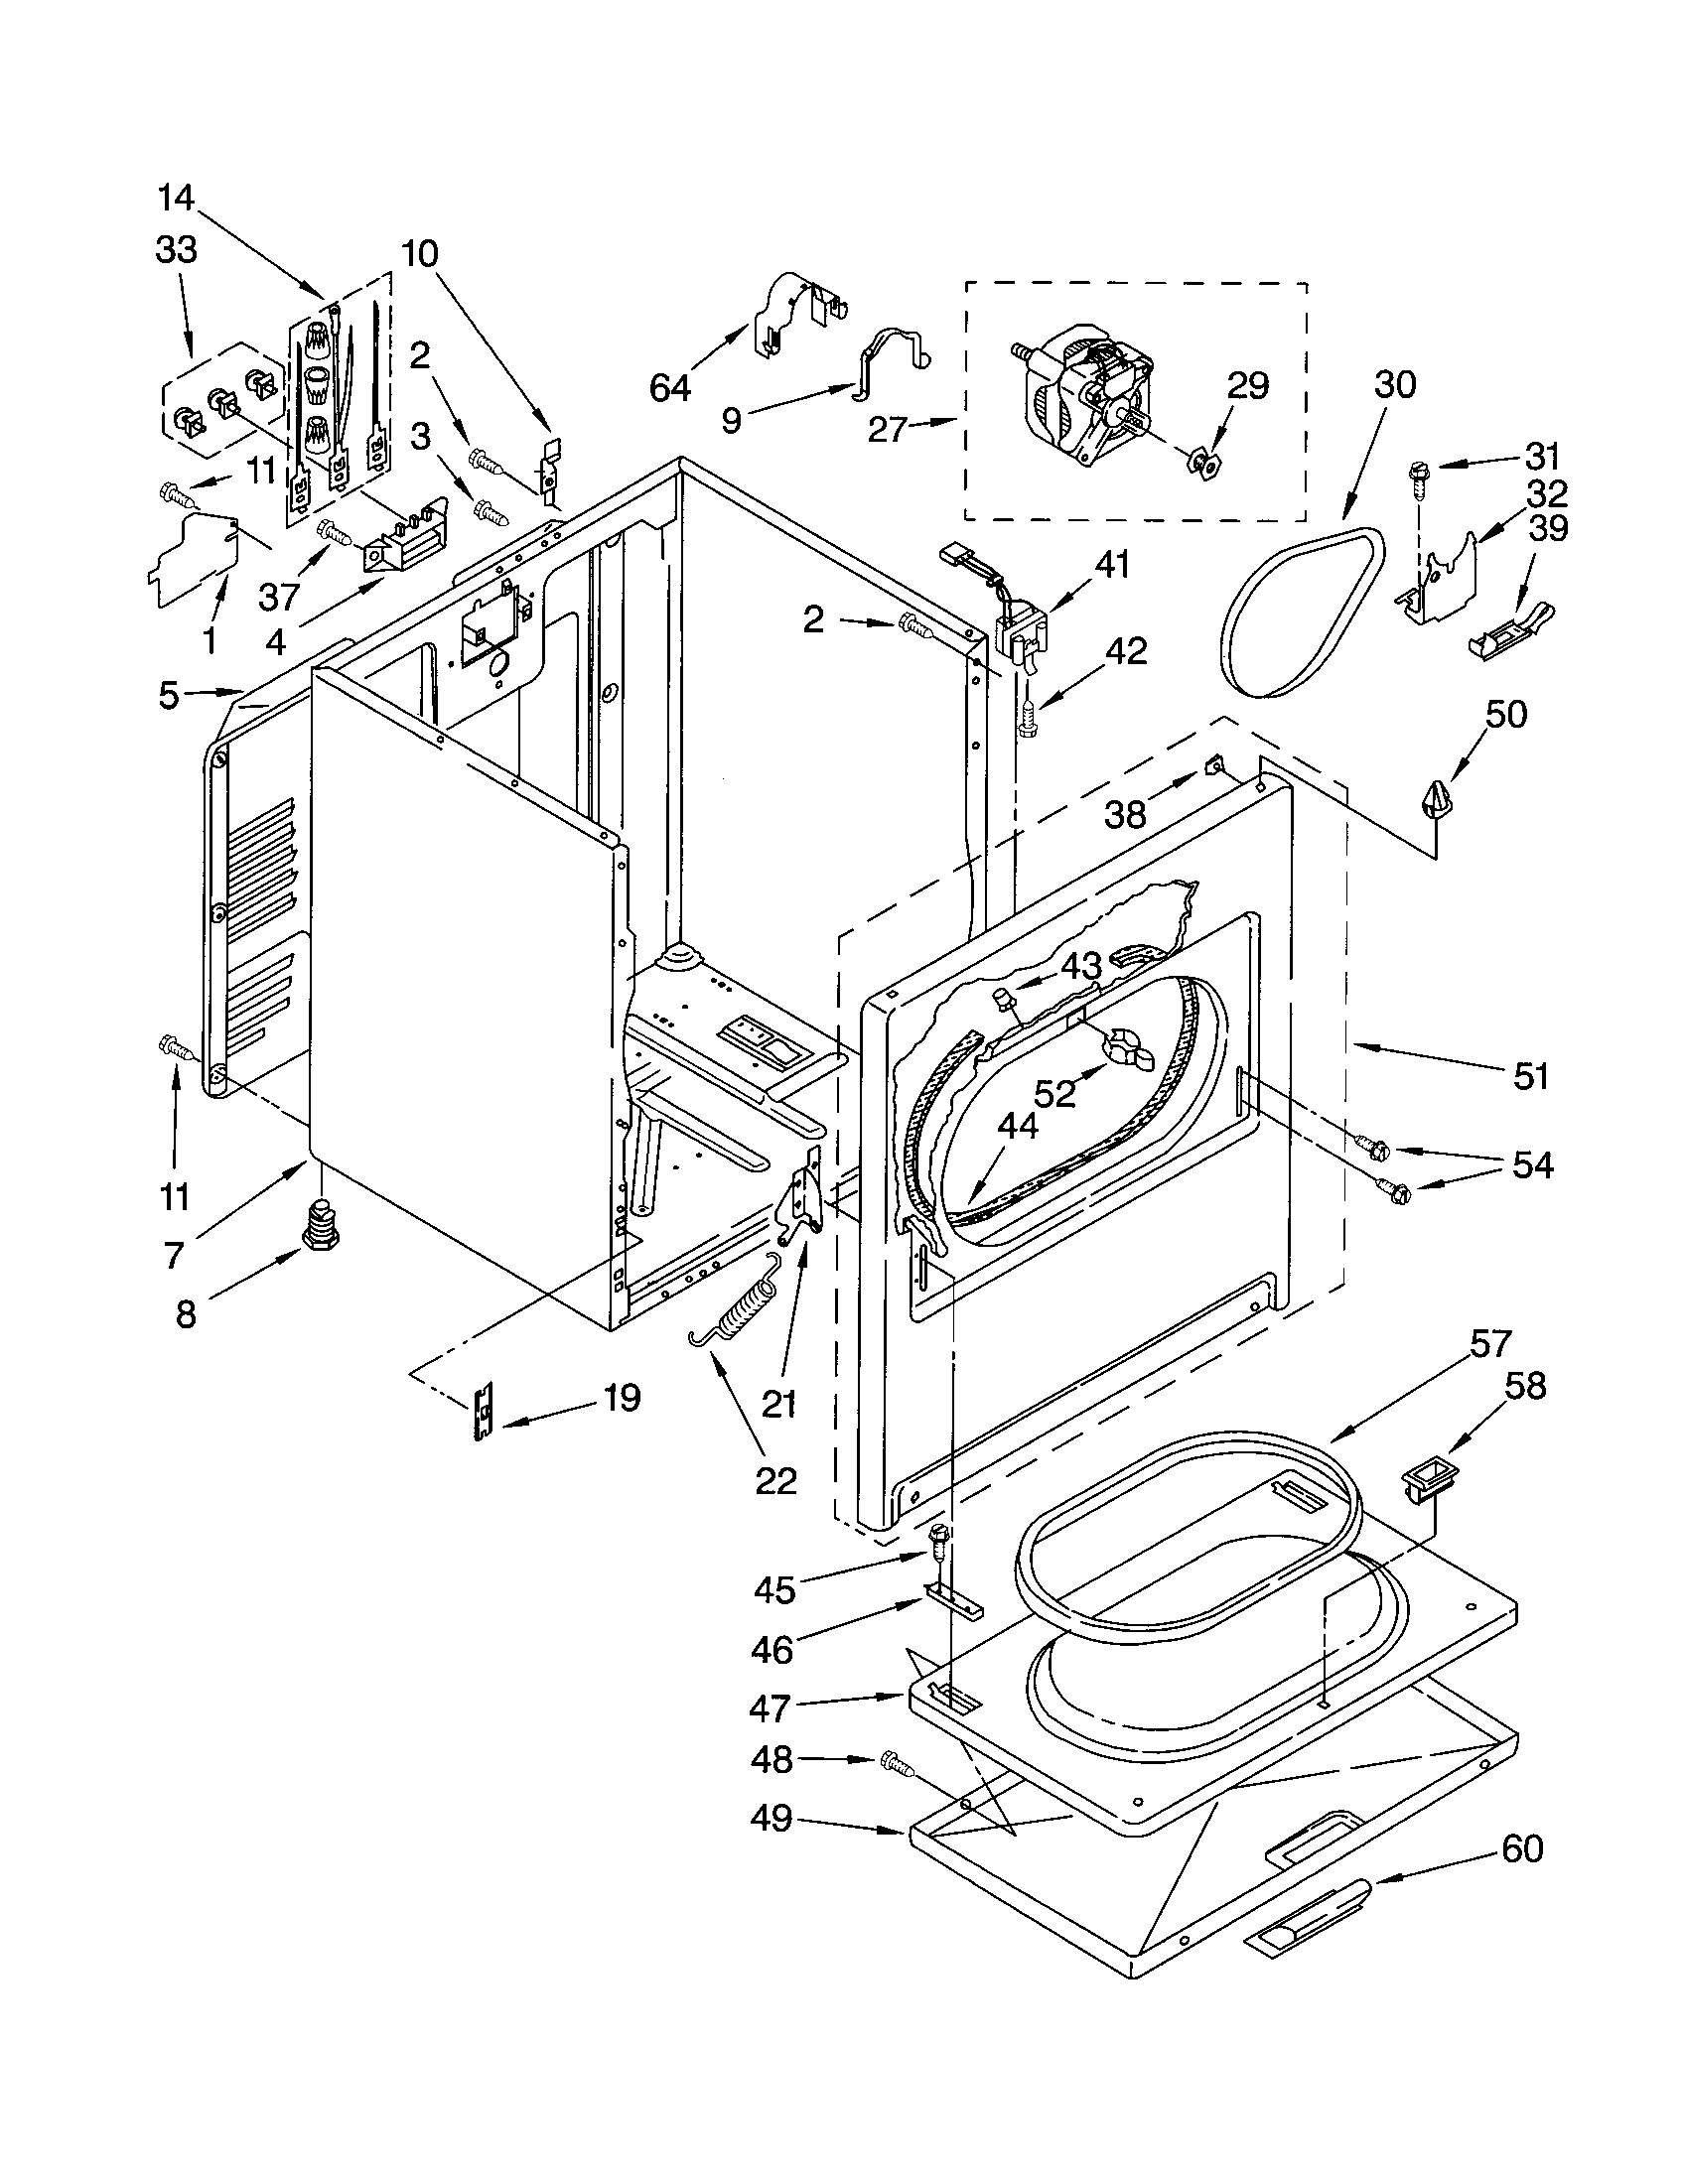 Electrical Schematic For Kenmore Dryer | Wiring Liry on inglis dryer wiring diagram, roper dryer wiring diagram, hotpoint dryer wiring diagram, estate dryer wiring diagram, whirlpool dryer wiring diagram, neptune dryer wiring diagram, admiral dryer wiring diagram, lg dryer wiring diagram, ge dryer wiring diagram, maytag bravos dryer wiring diagram,